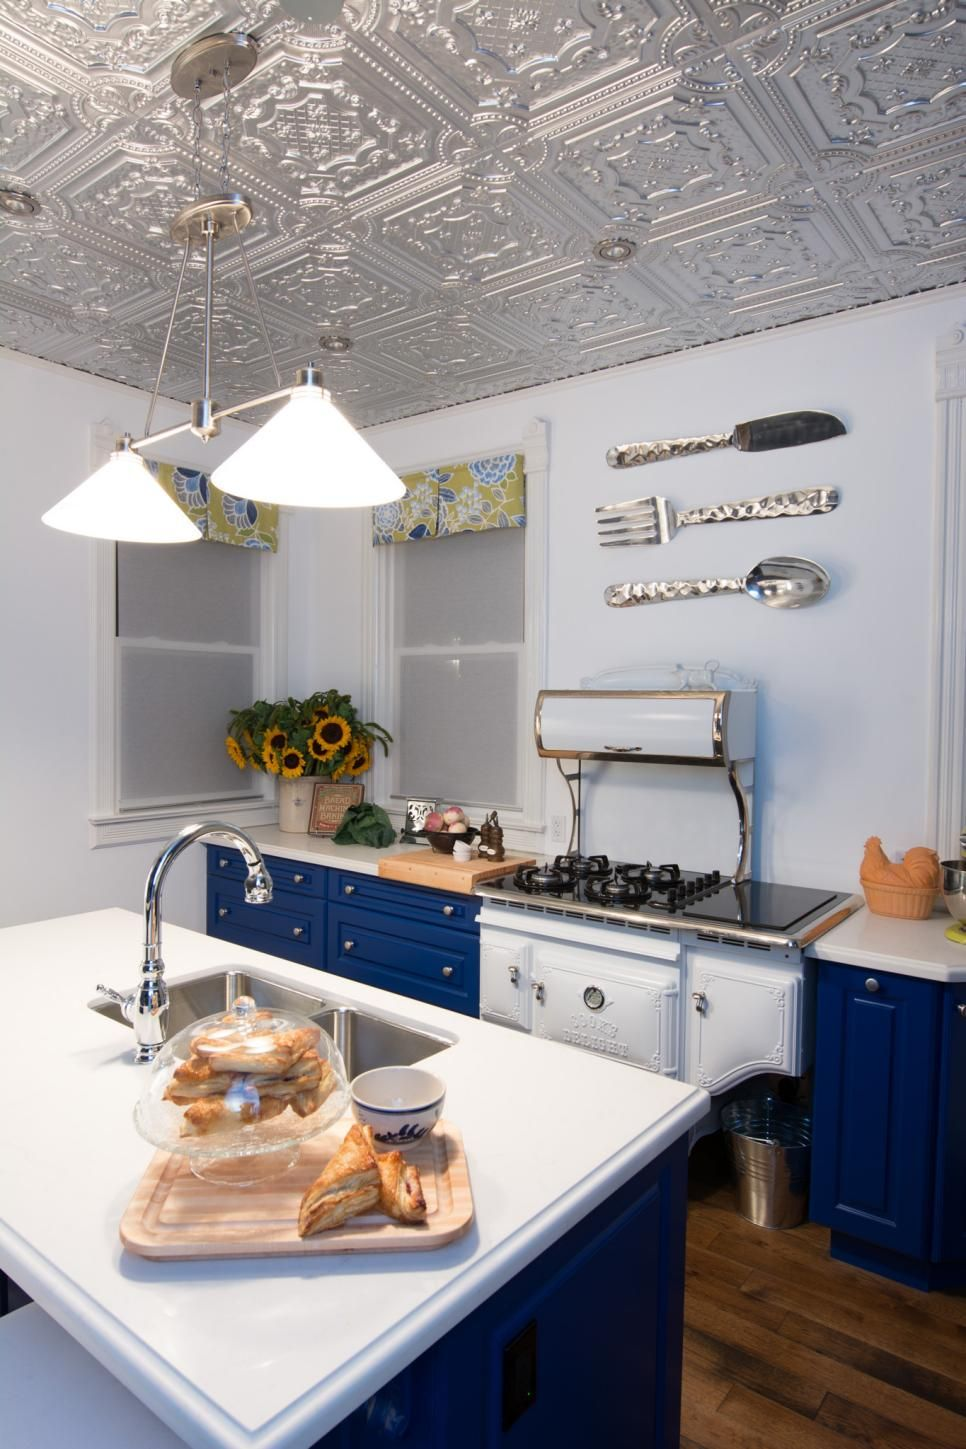 This Small Kitchen Design By Hilary Farr Of HGTVu0027s Hit Show Love It Or List  It